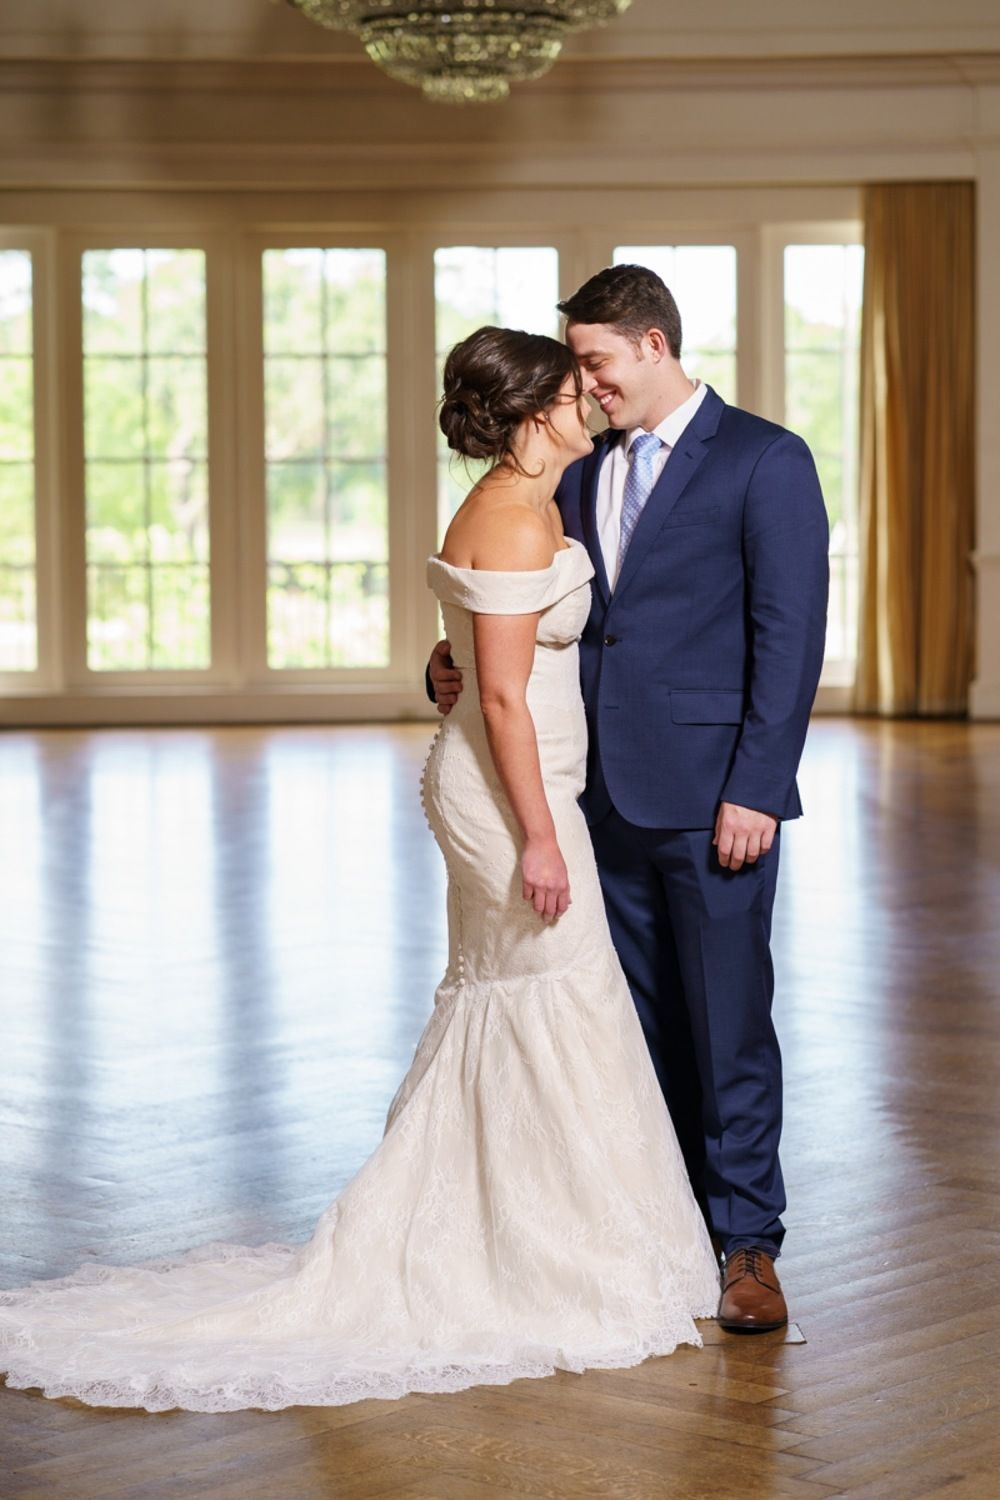 Romantic Wedding At River Oaks Country Club In Houston Texas Md Turner Photography Houston Houston Wedding Photographer Texas Wedding Photographer Wedding